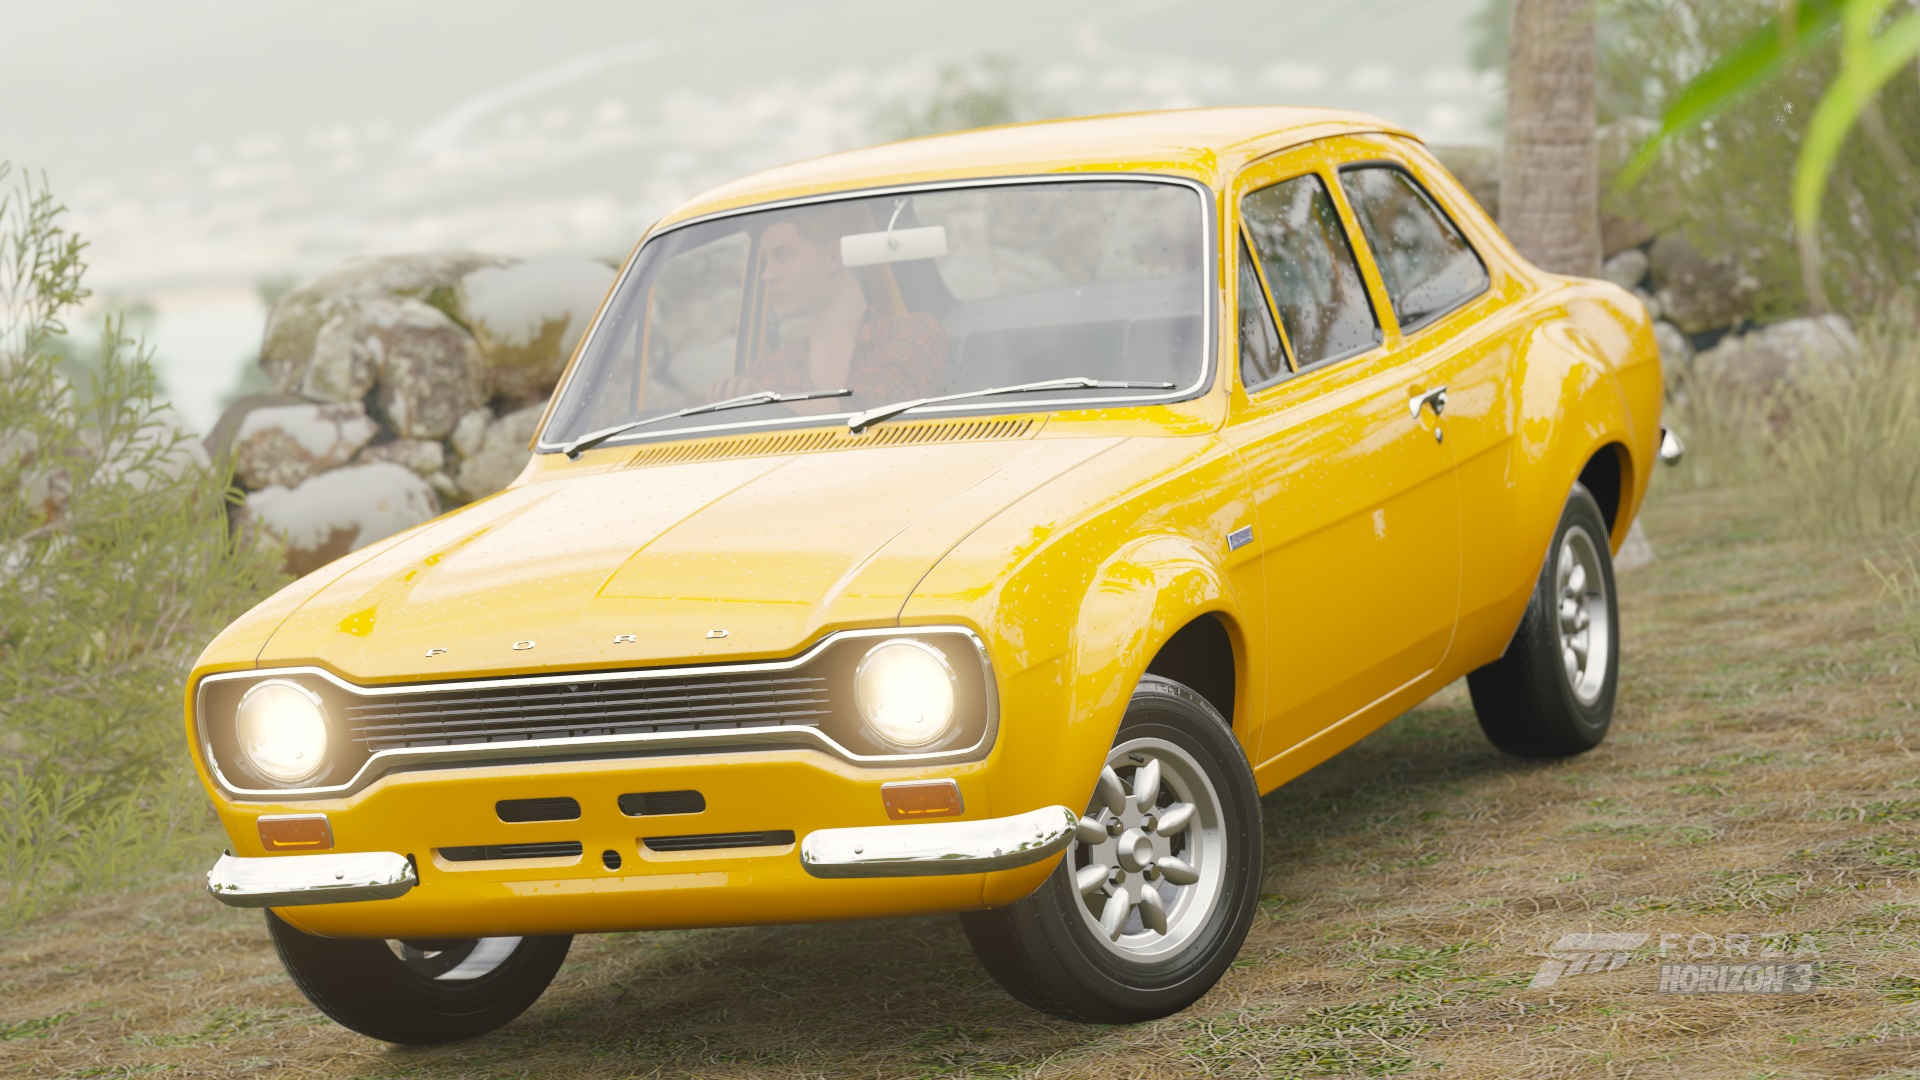 Forza Horizon 3 Cars Turn Signal Description And Operation 64 73 Mustang 1973 Ford Escort Rs1600 Photo By V Team Sakal